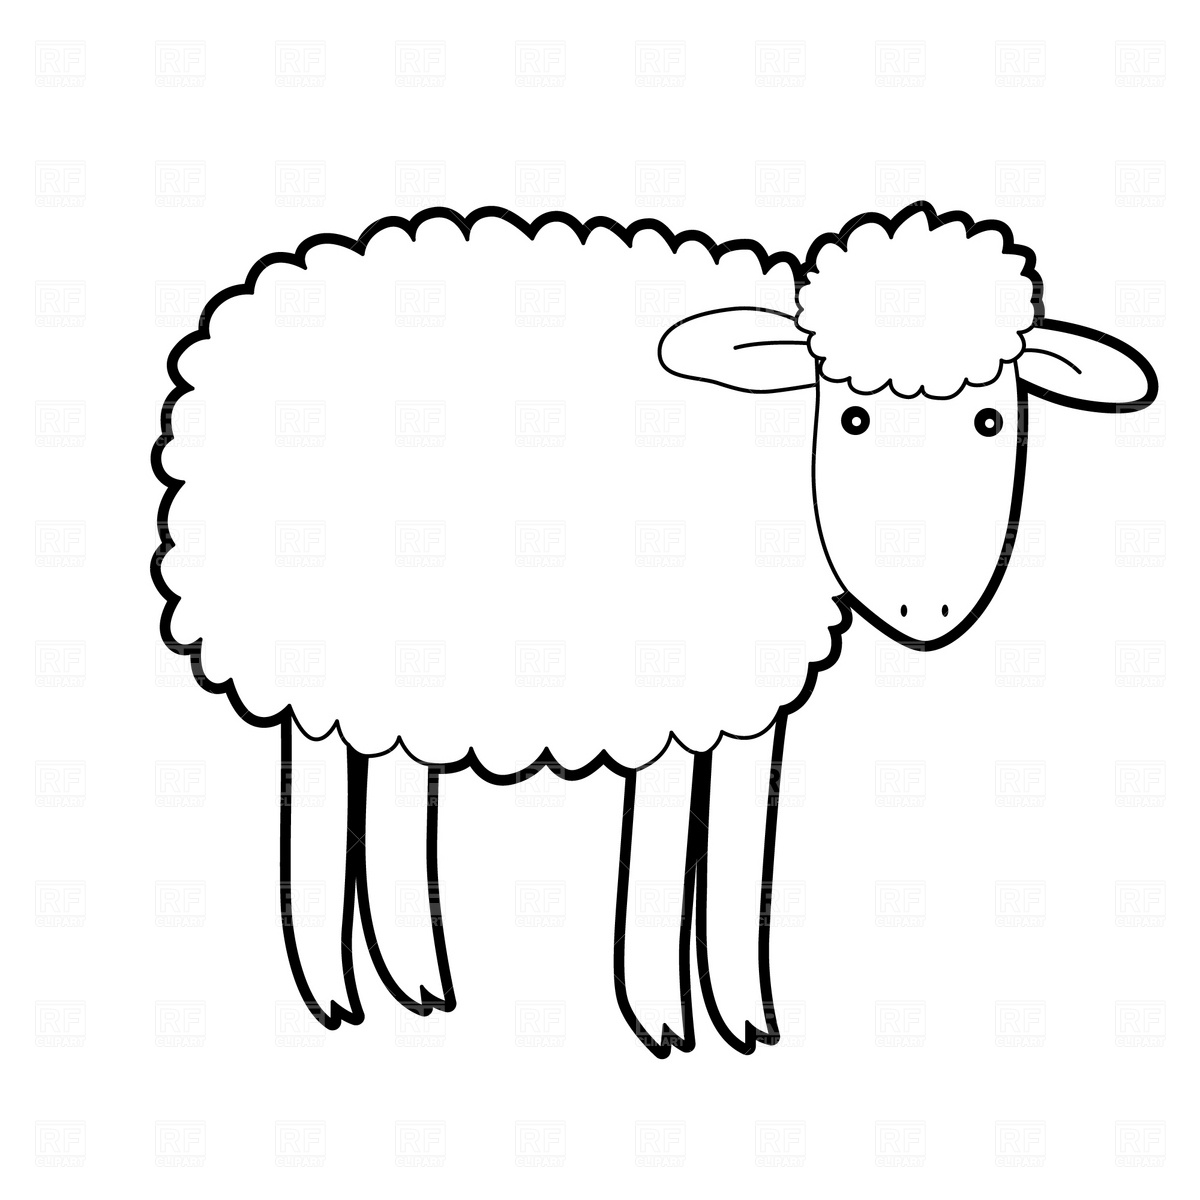 79+ Free Sheep Clipart   ClipartLook